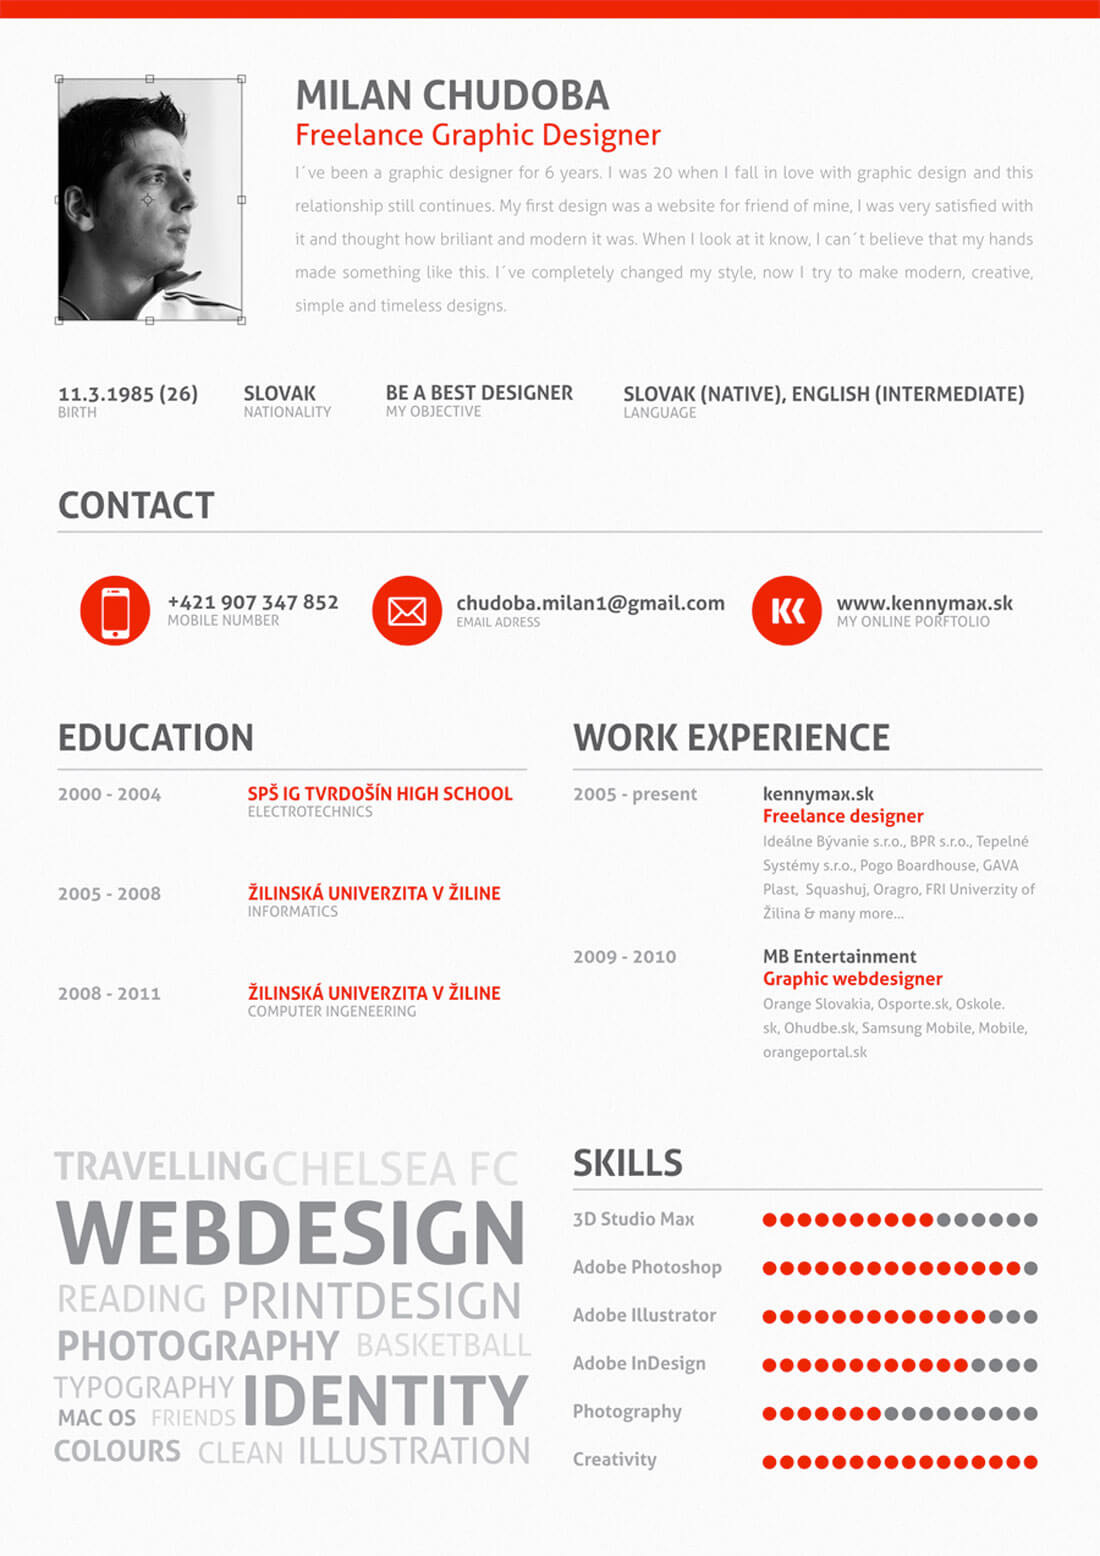 How To Fill Out Skills On A Resume 10 Skills Every Designer Needs On Their Resume Design Shack